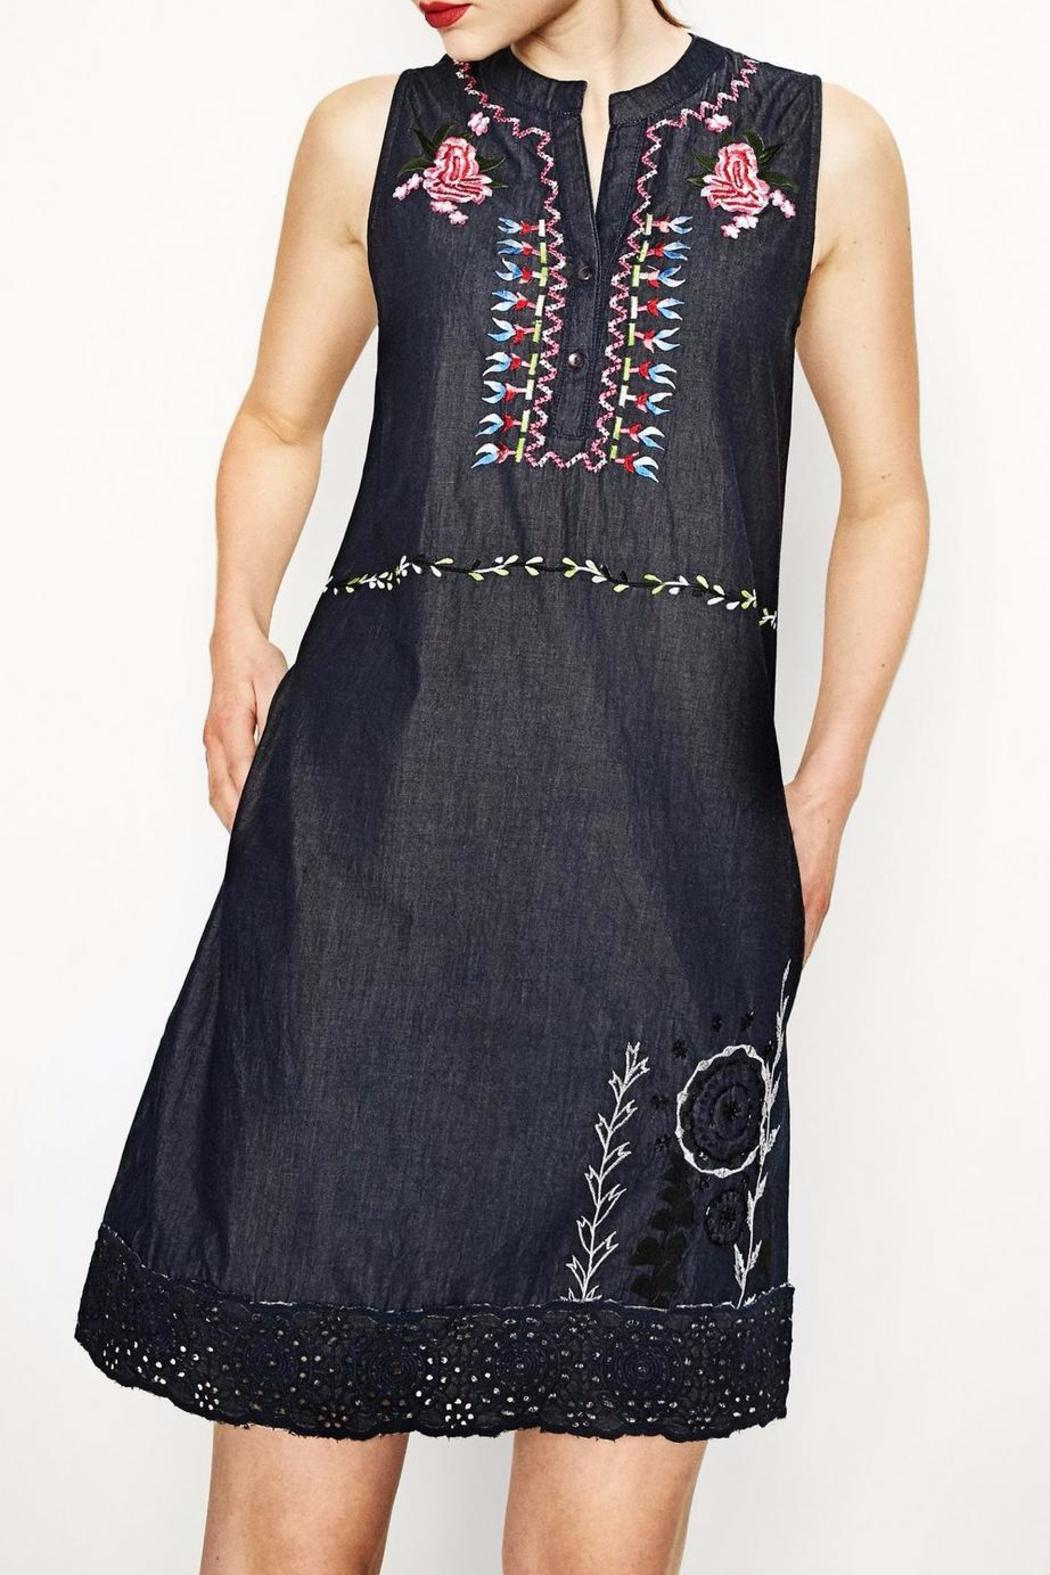 Desigual dress black and white oxford